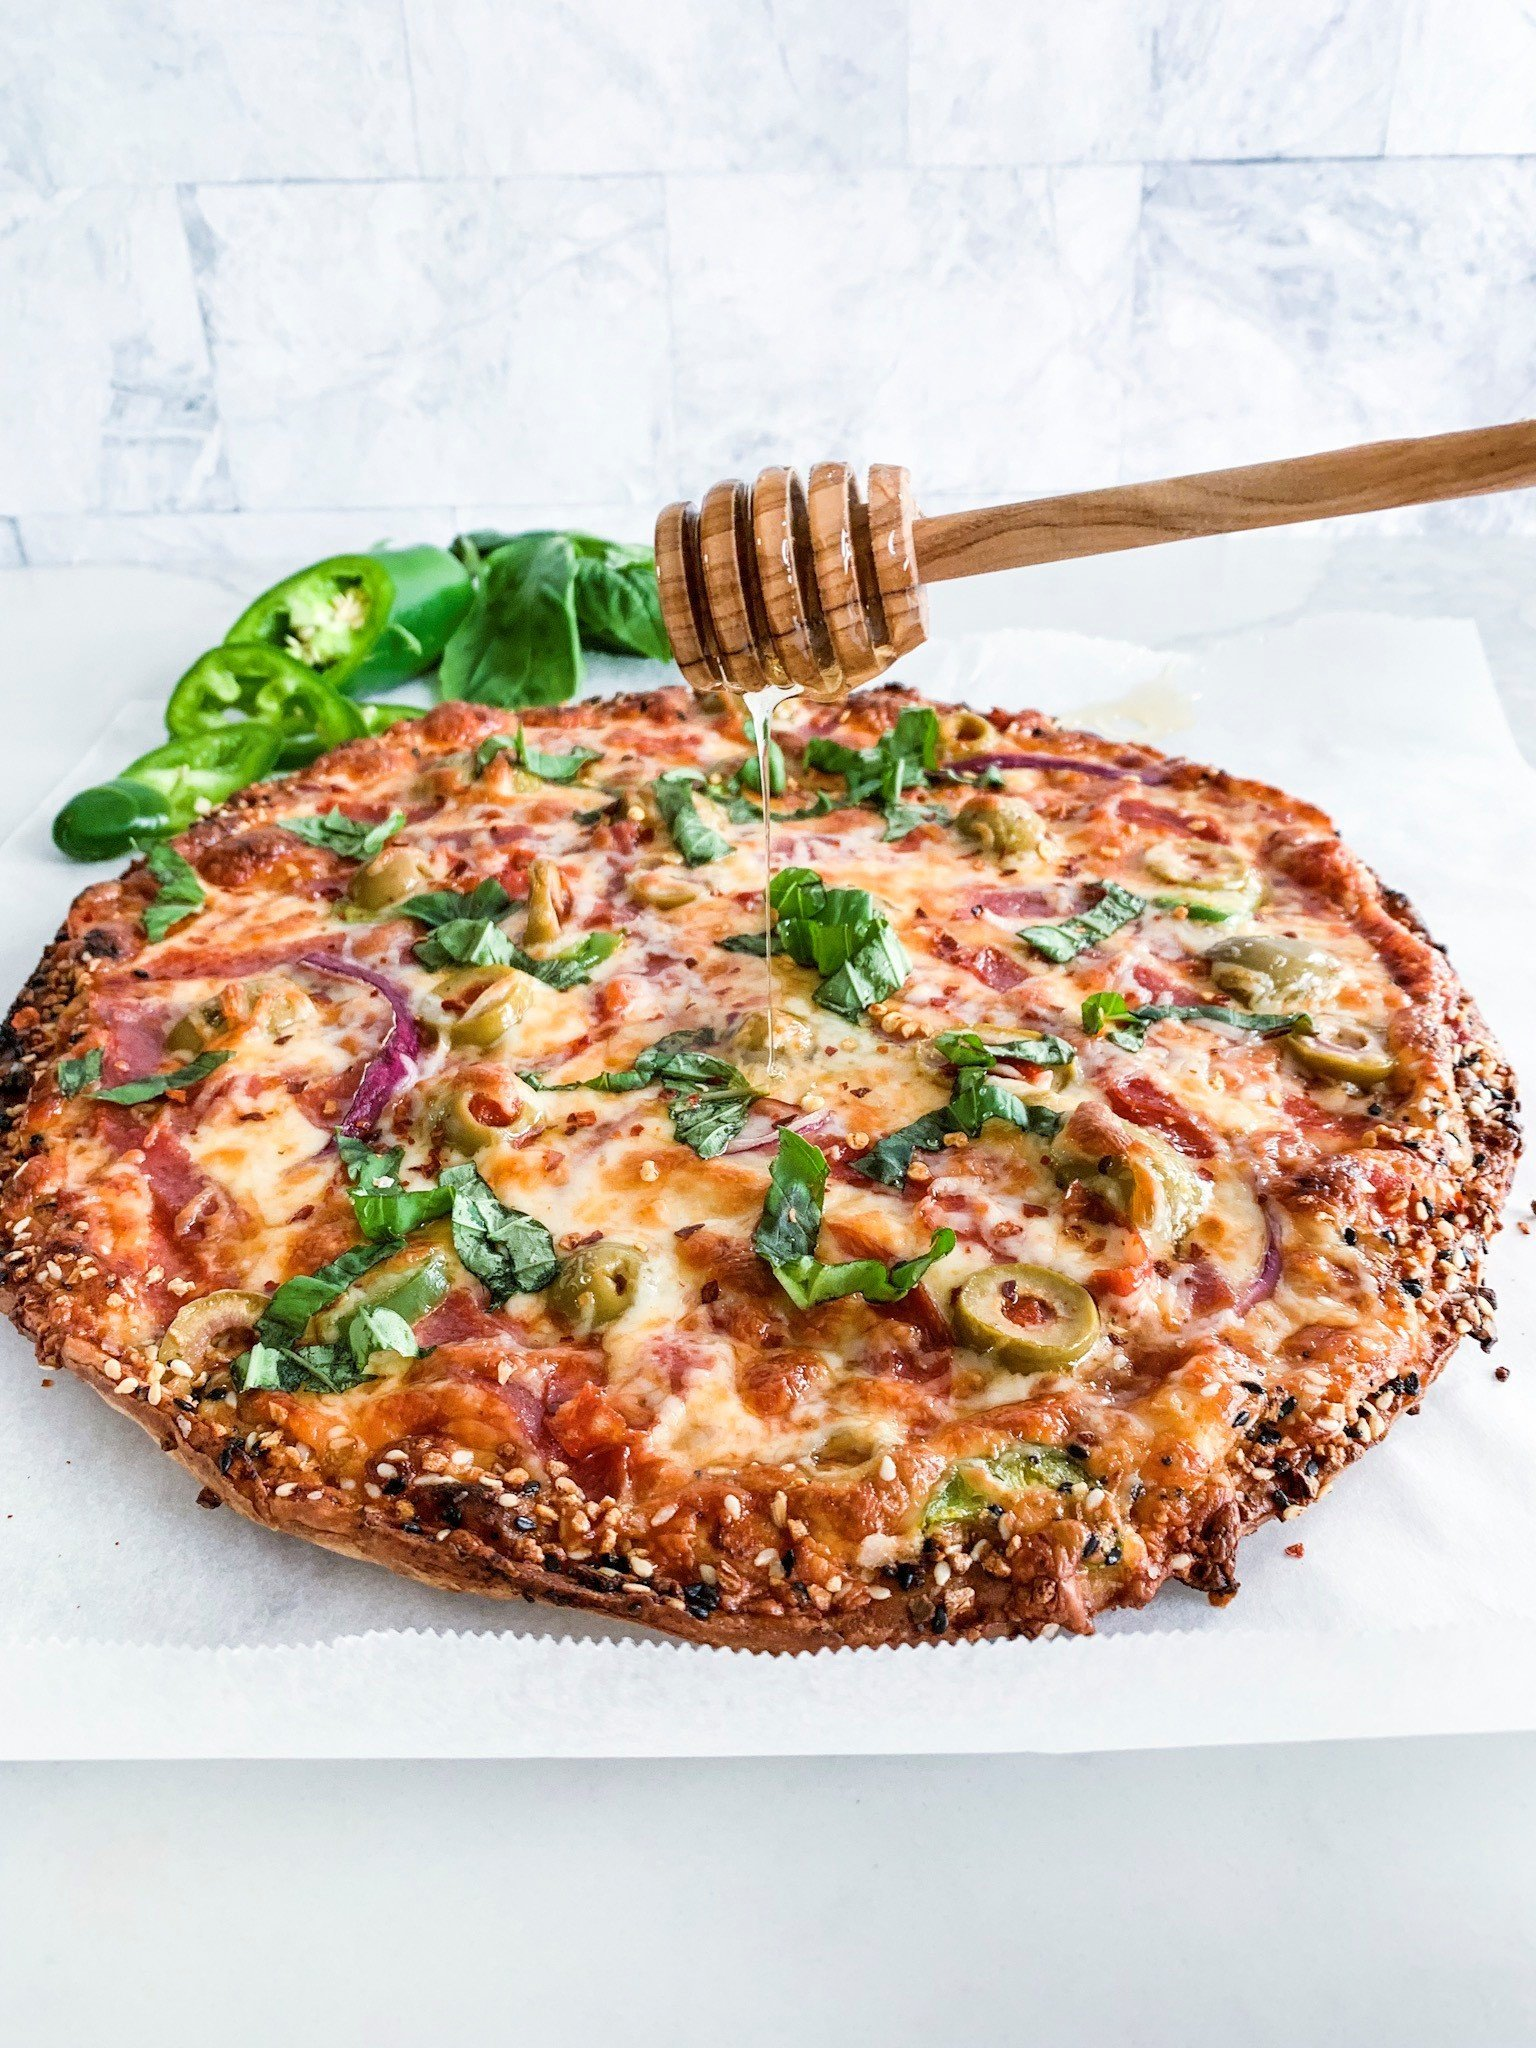 Spicy salami & olive pizza